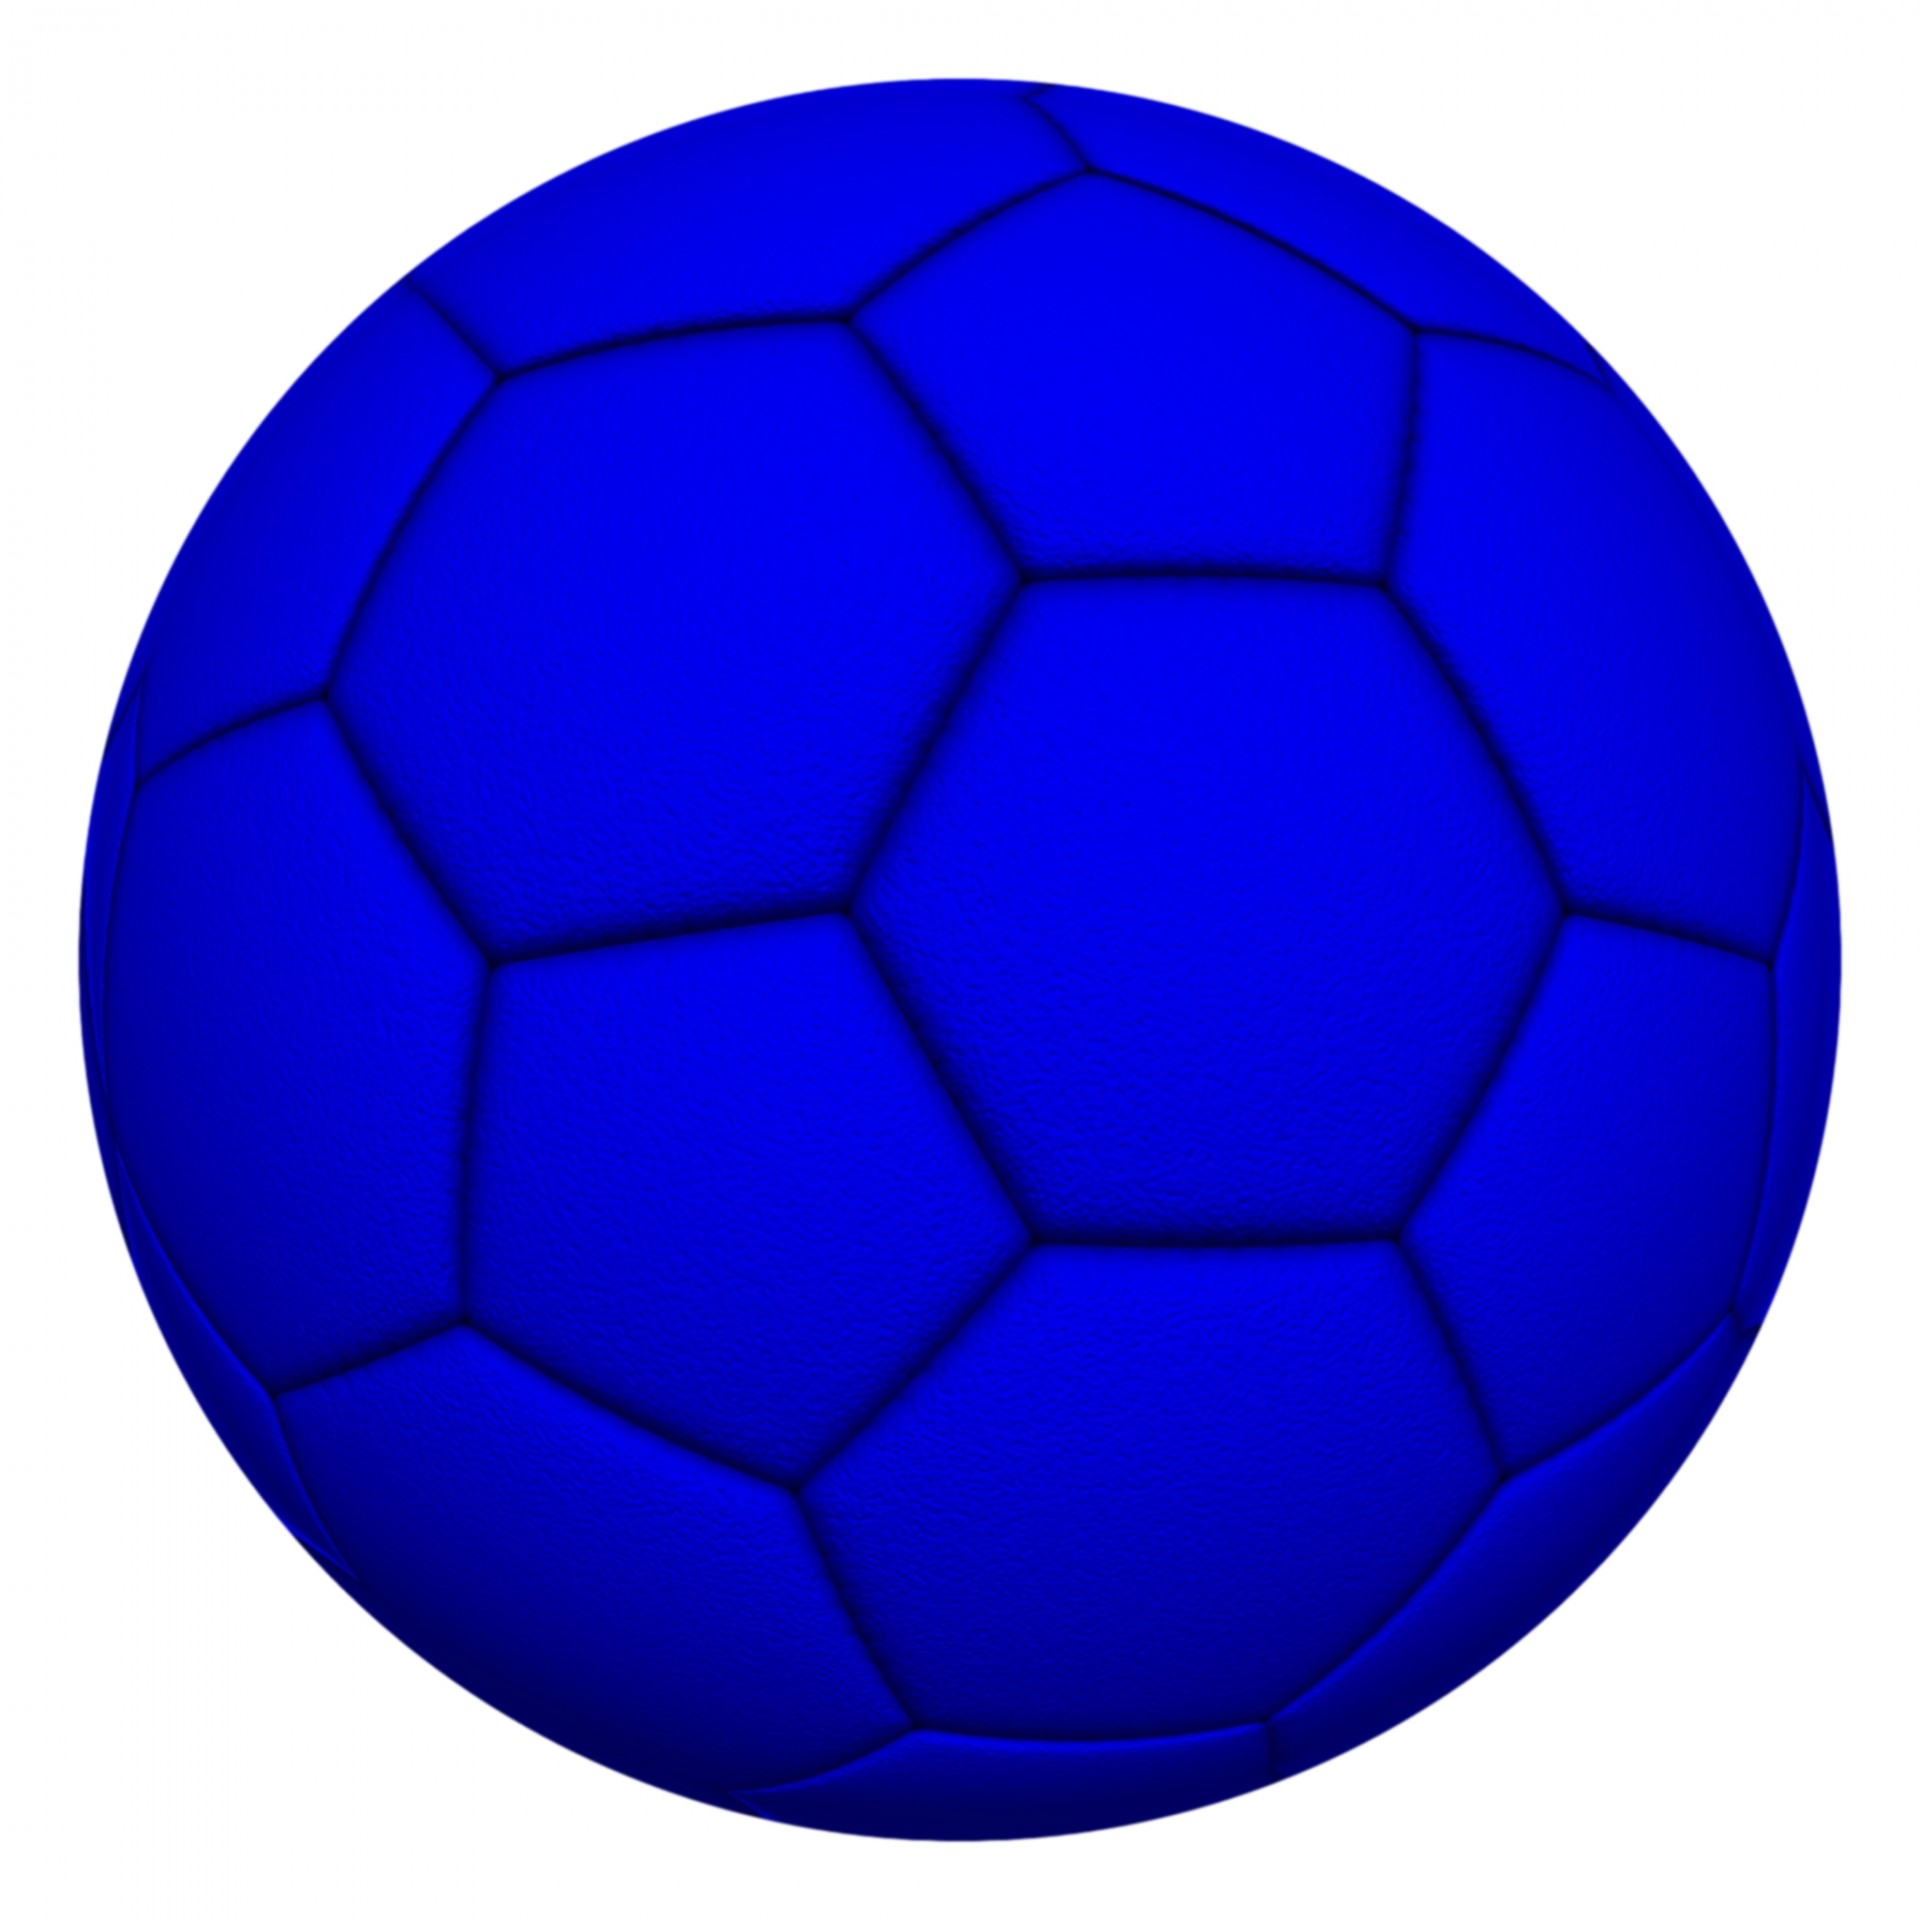 Blue soccer ball clipart vector black and white Soccer Ball Images - Public Domain Pictures - Page 1 vector black and white